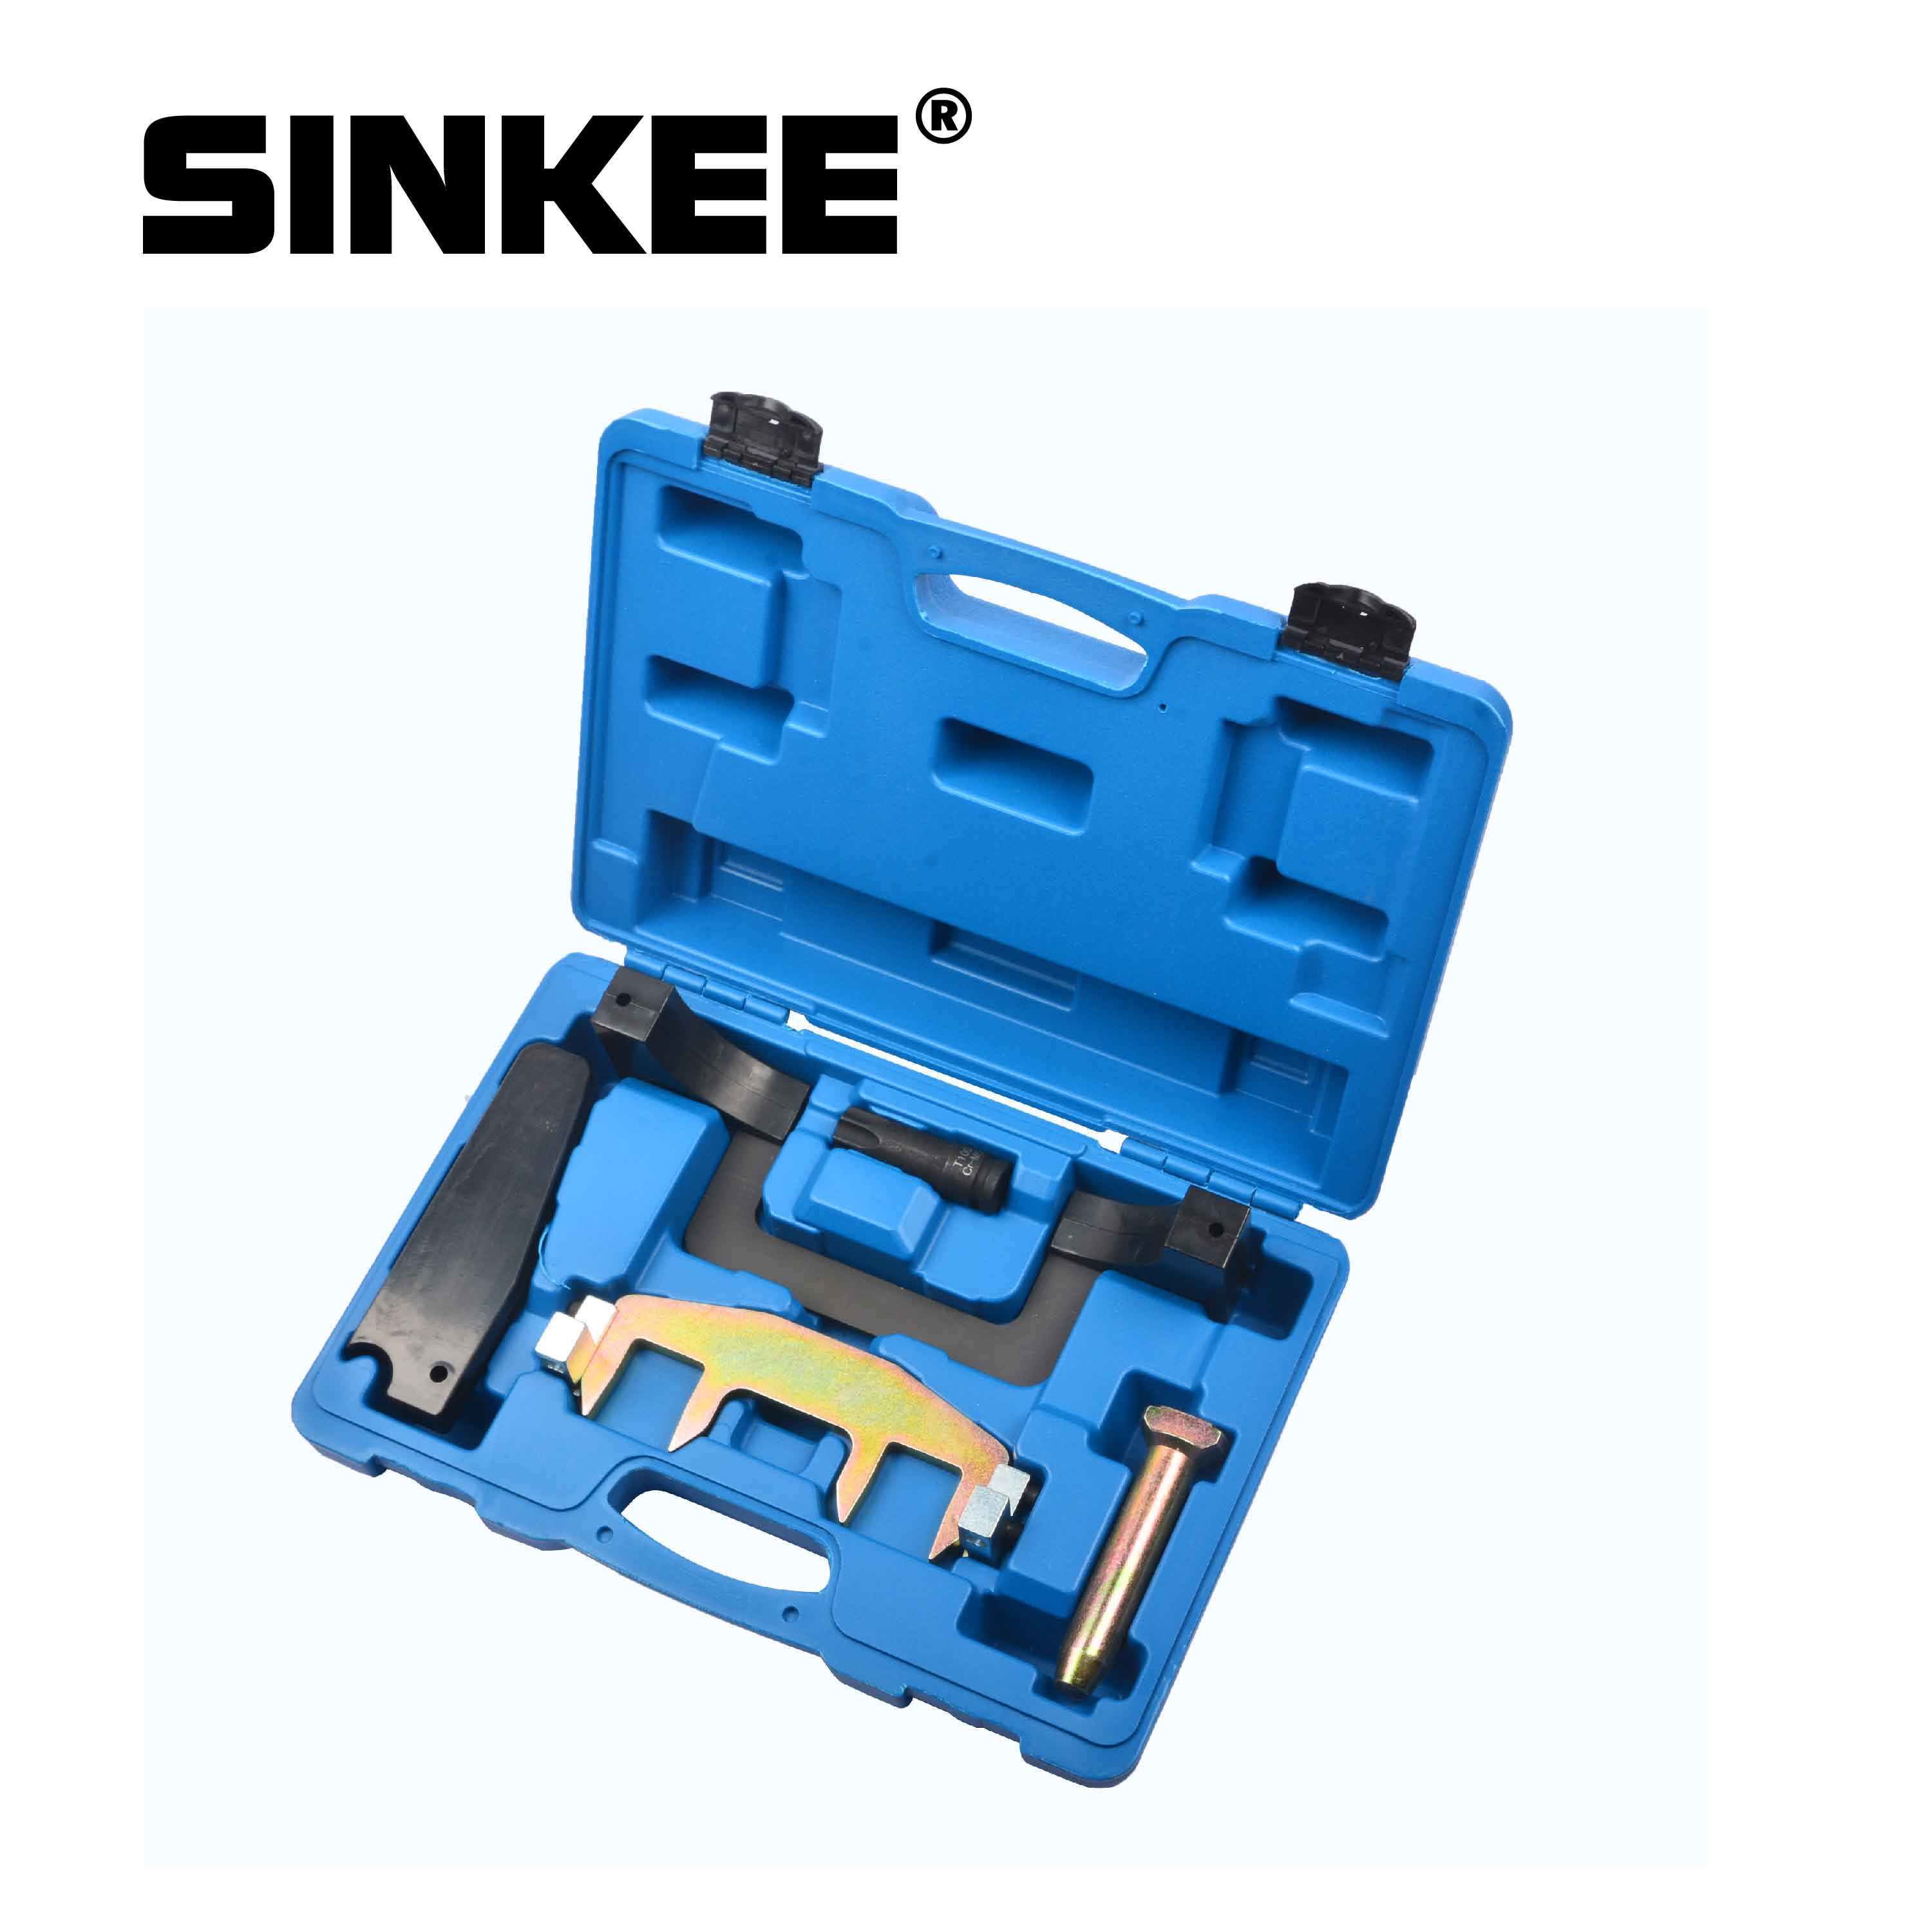 For Mercedes Benz M271 Engine Camshaft Alignment Timing Locking Chain Fixture Tool Set C230 271 203 SK1014For Mercedes Benz M271 Engine Camshaft Alignment Timing Locking Chain Fixture Tool Set C230 271 203 SK1014